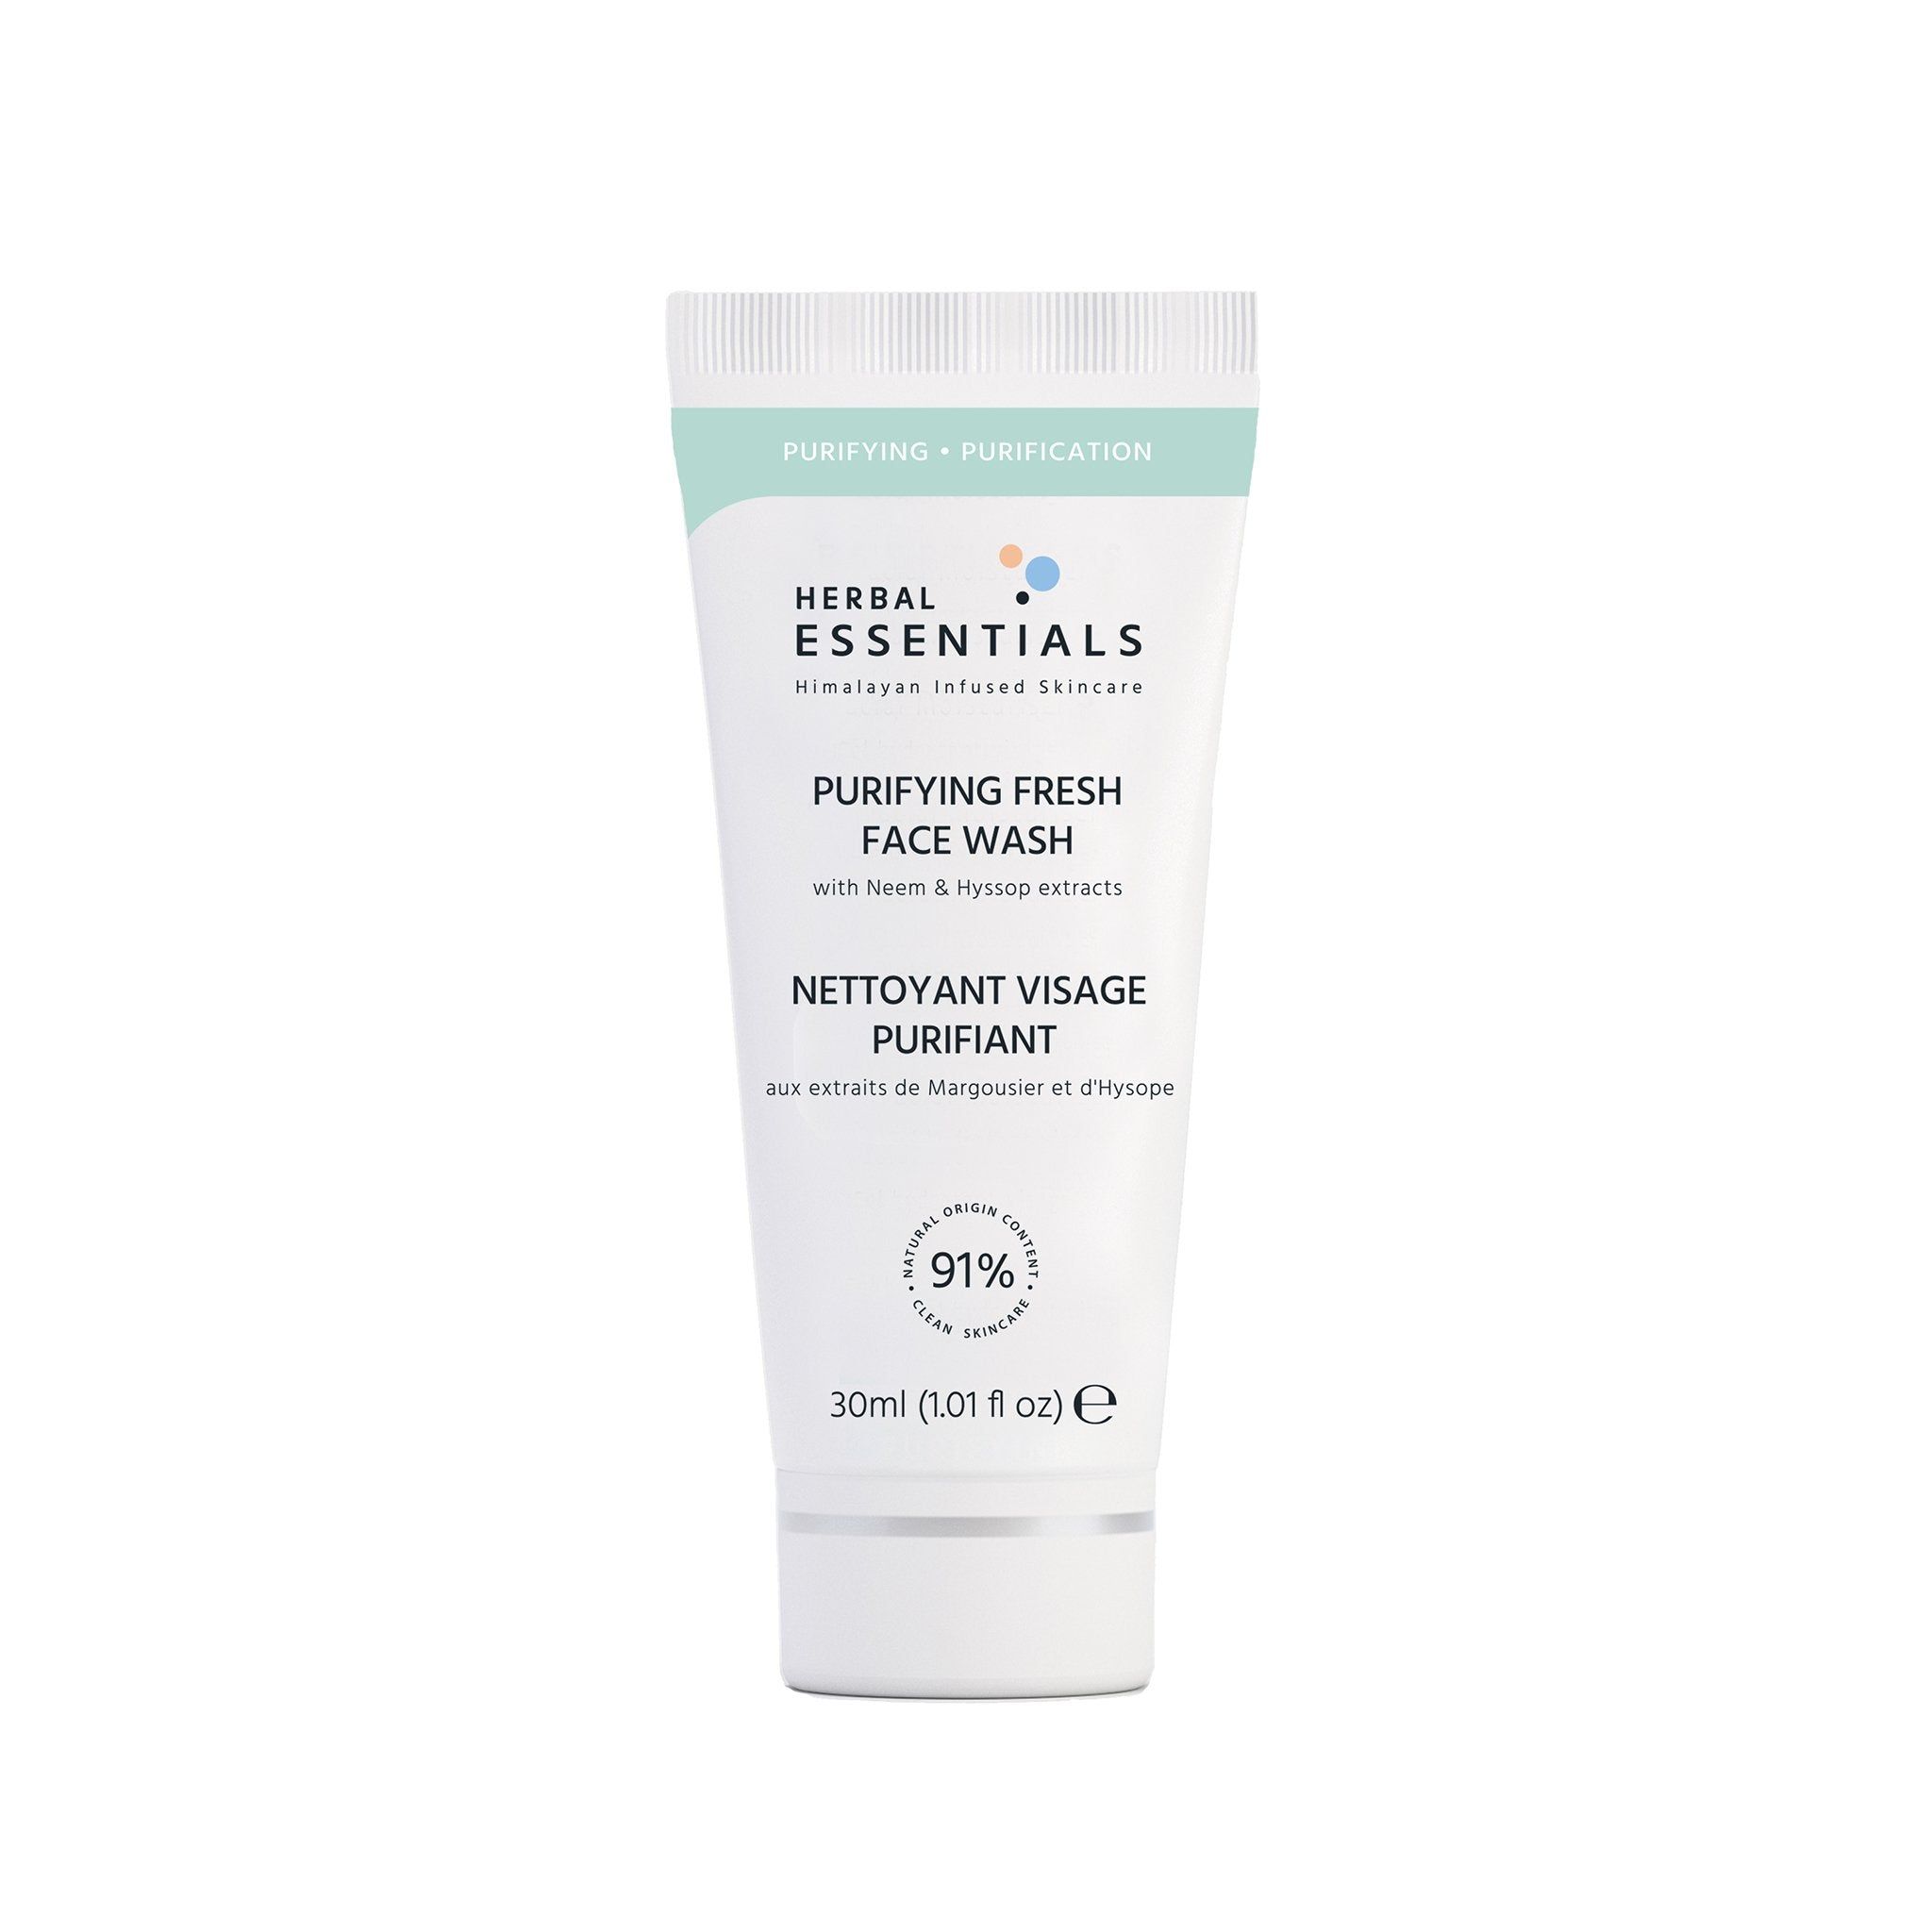 PURIFYING FRESH FACE WASH with Neem & Hyssop extracts - 30ml - Herbal Essentials Skincare